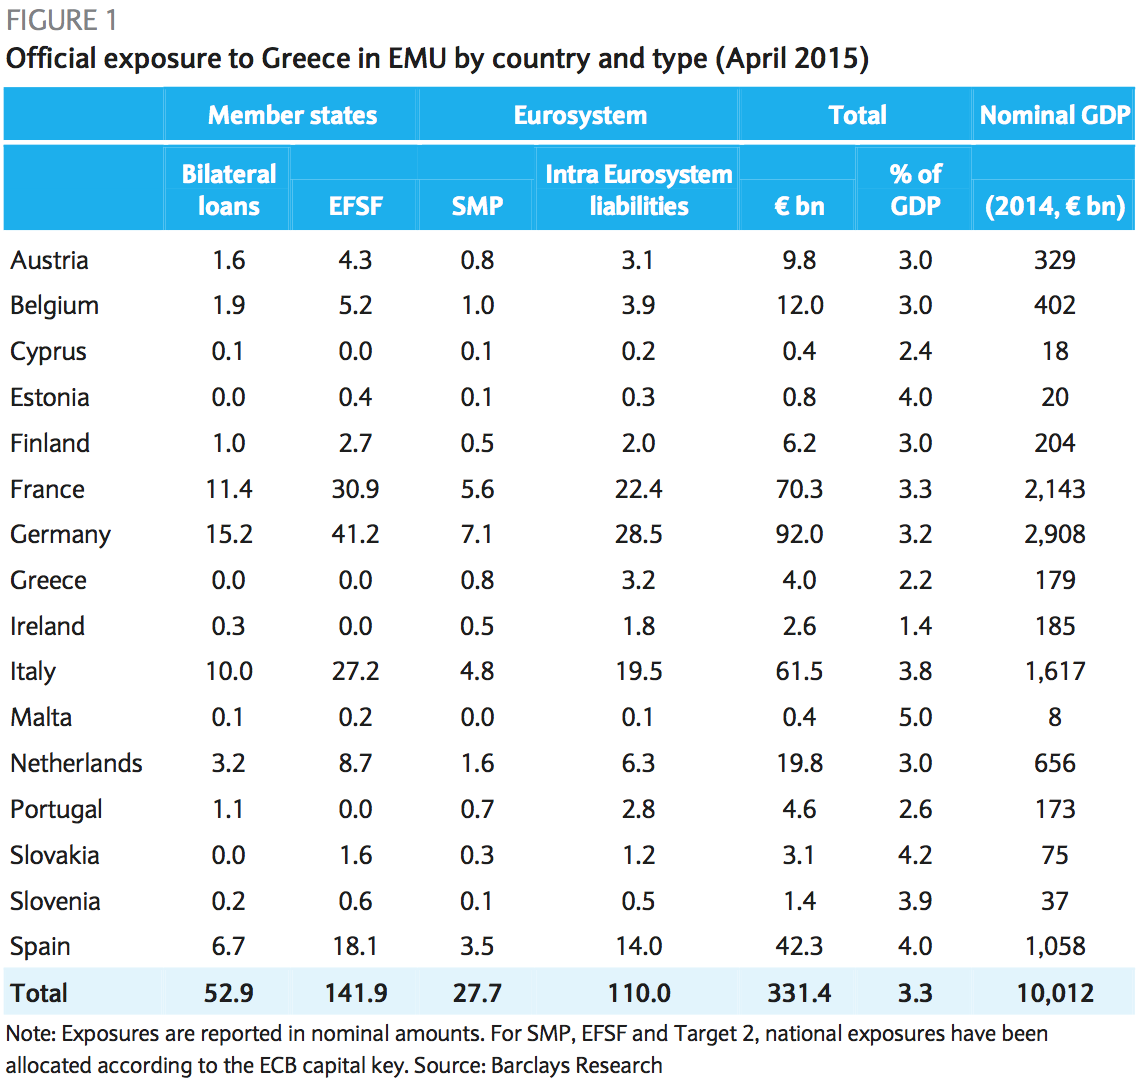 Barclays: Official exposure to Greece in EMU by country and type